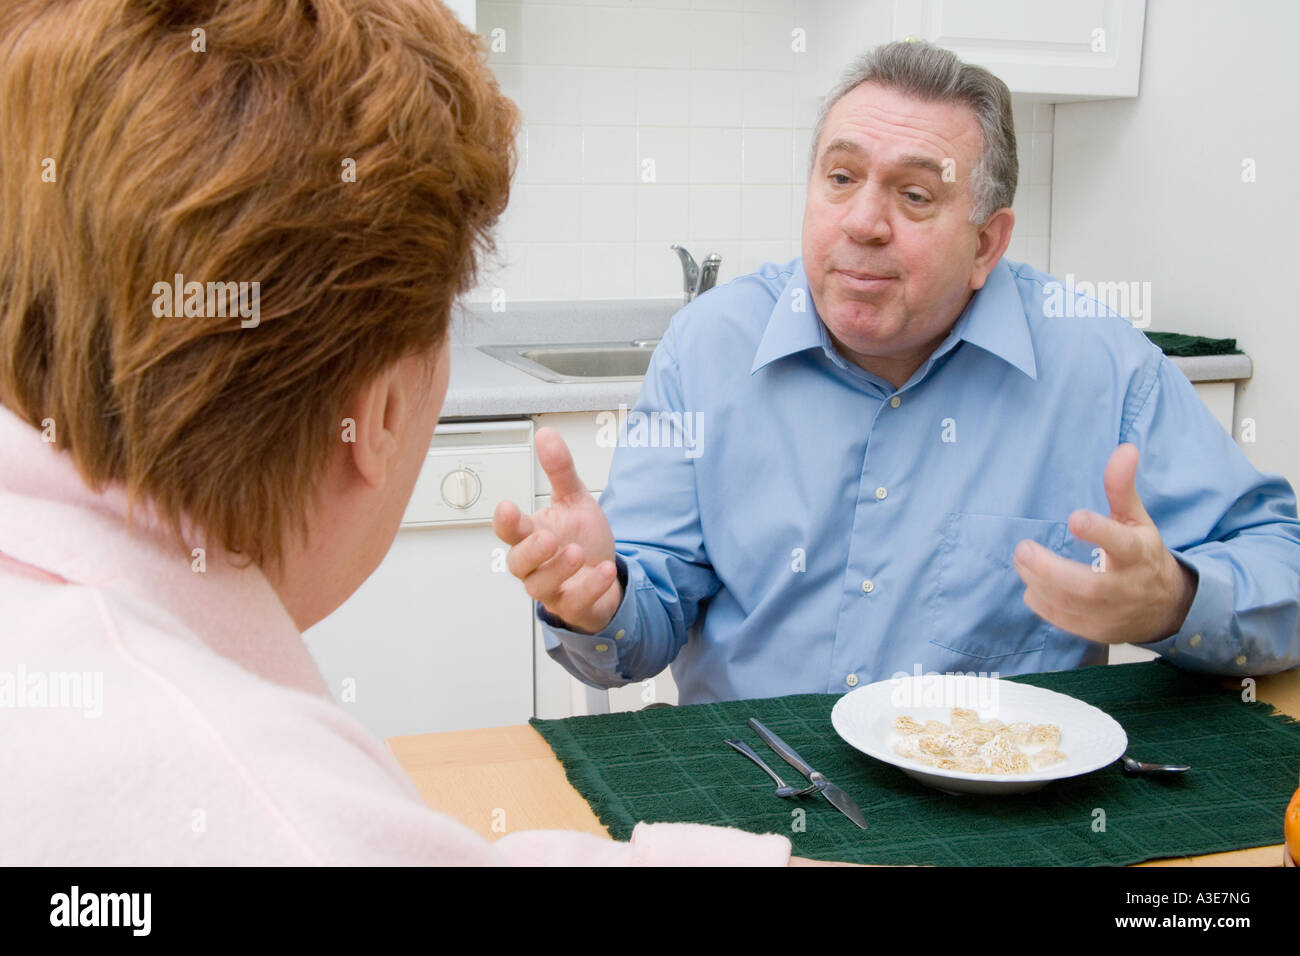 Senior couple having a spat or discussion in the kitchen. - Stock Image